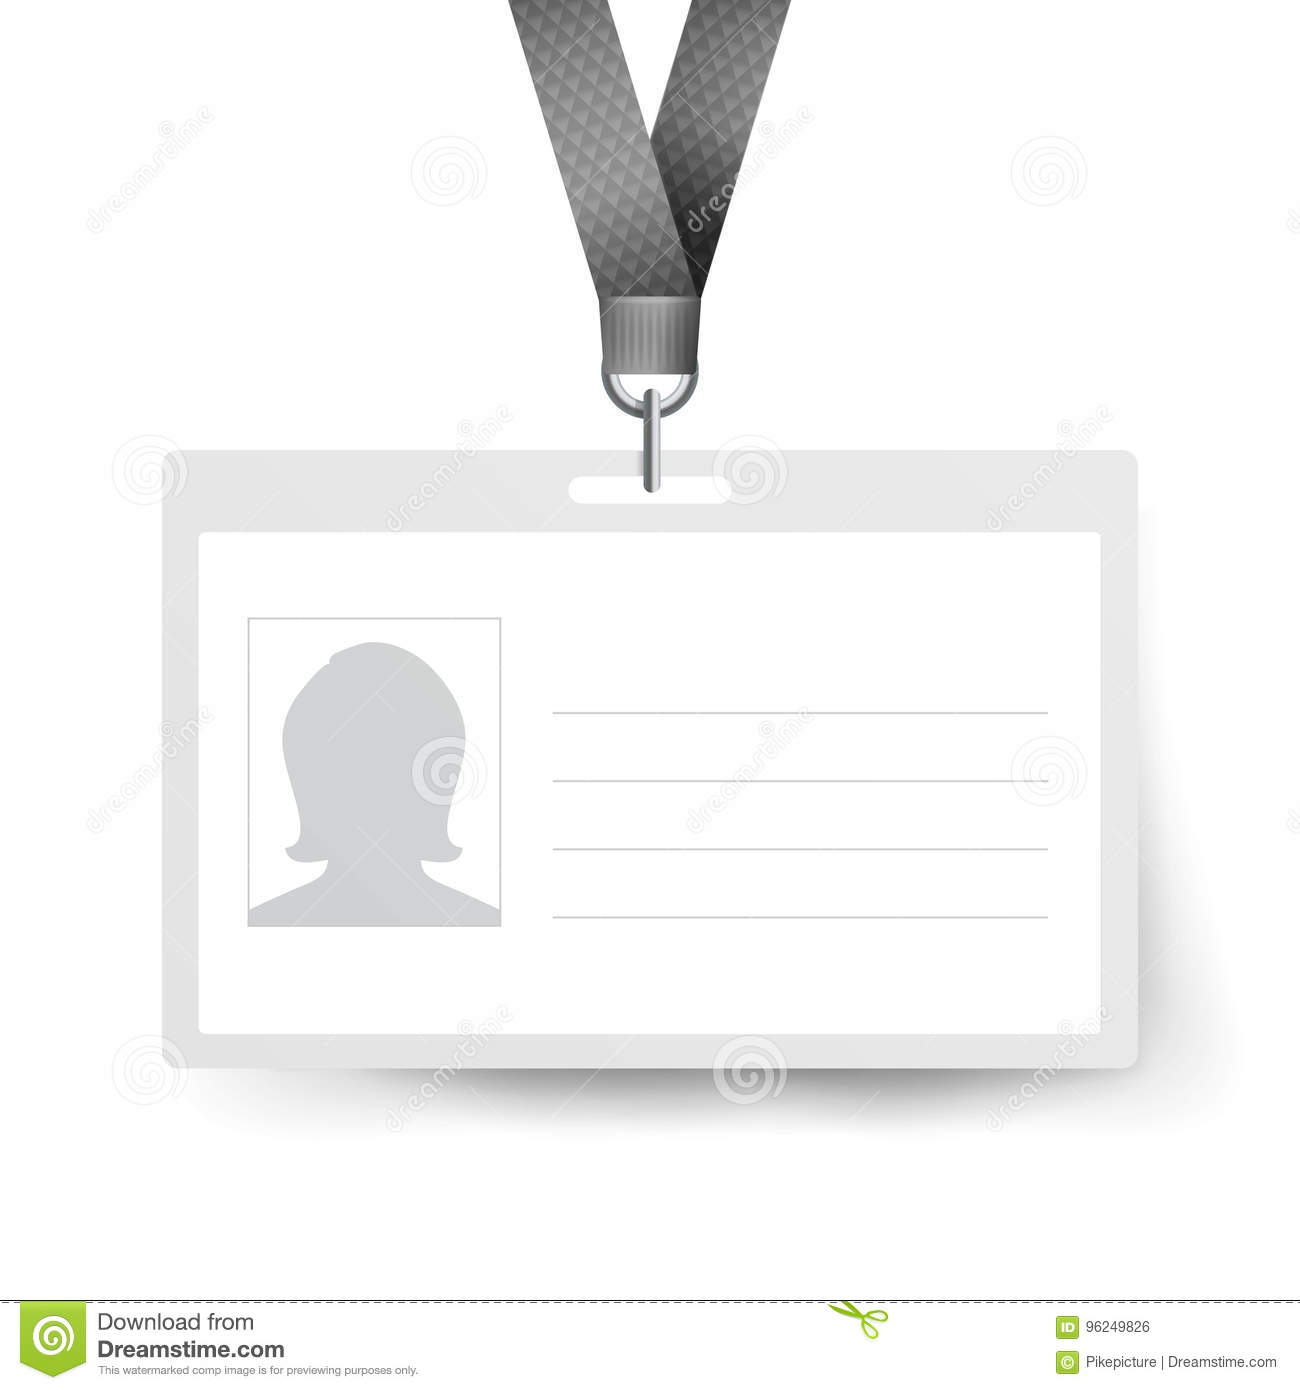 Realistic Identification Card Vector Template. Name Tag ...